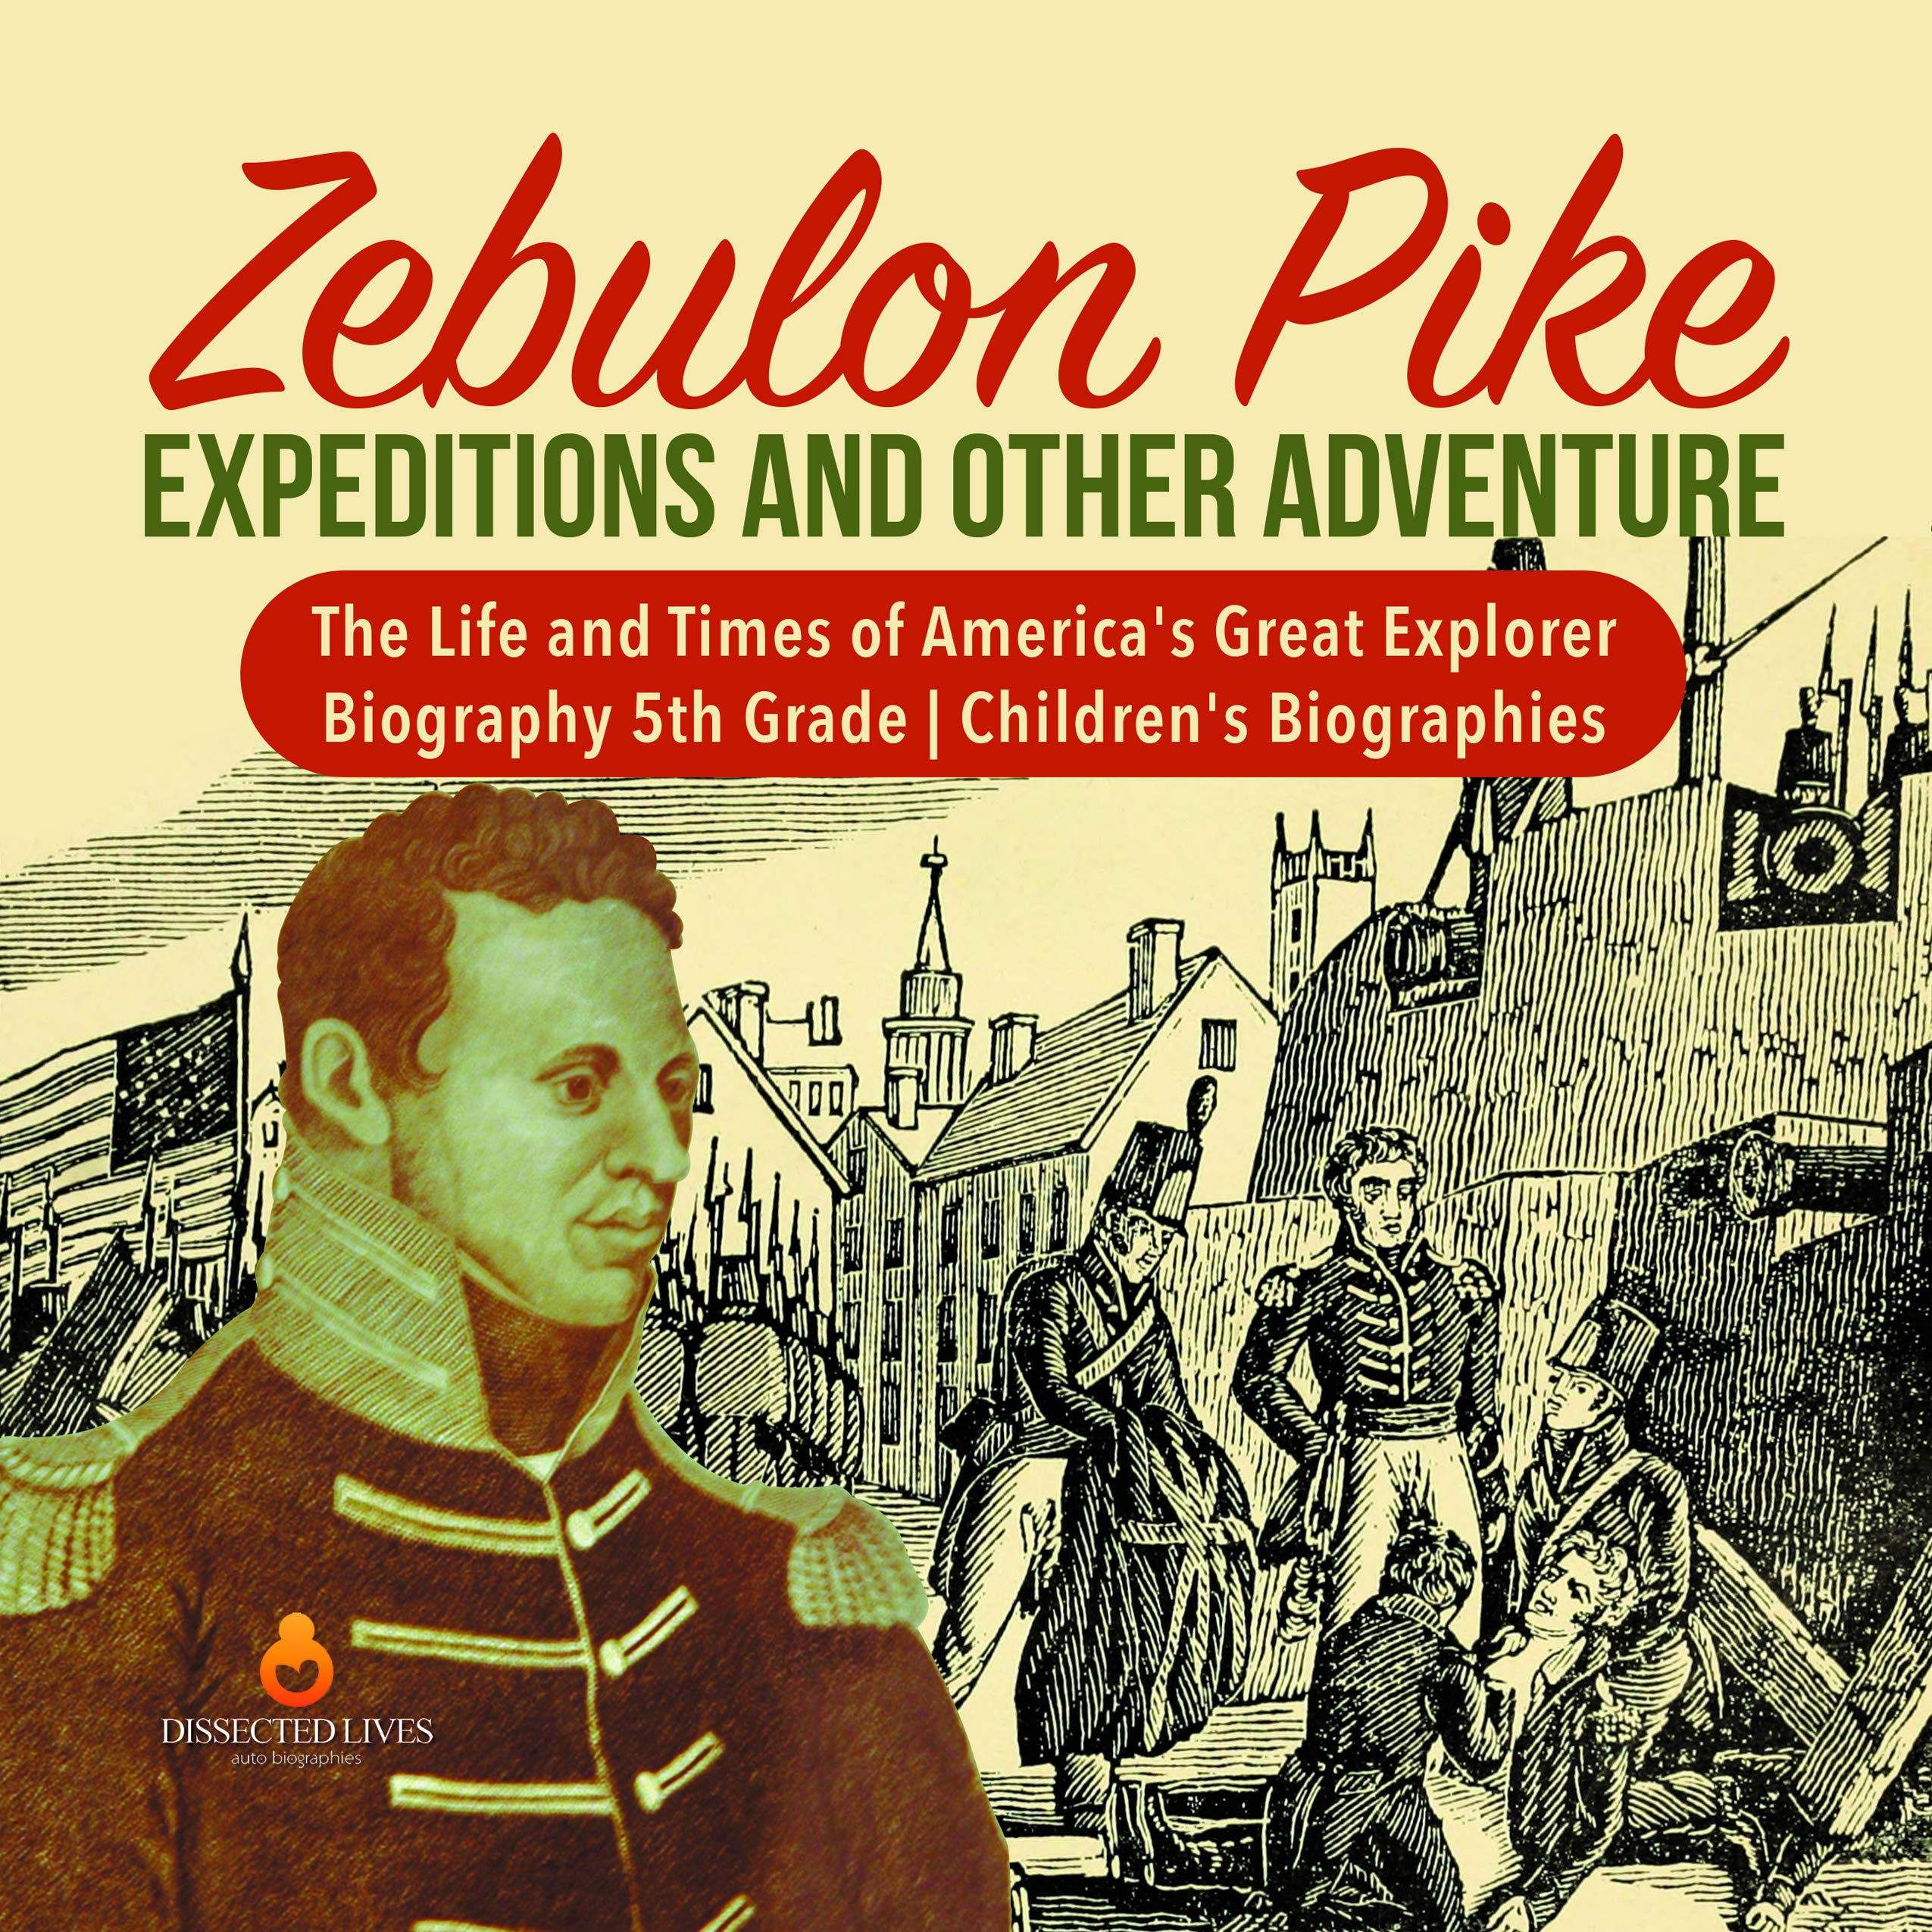 Zebulon Pike Expeditions and Other Adventure | The Life and Times of America's Great Explorer | Biography 5th Grade | Children's Biographies